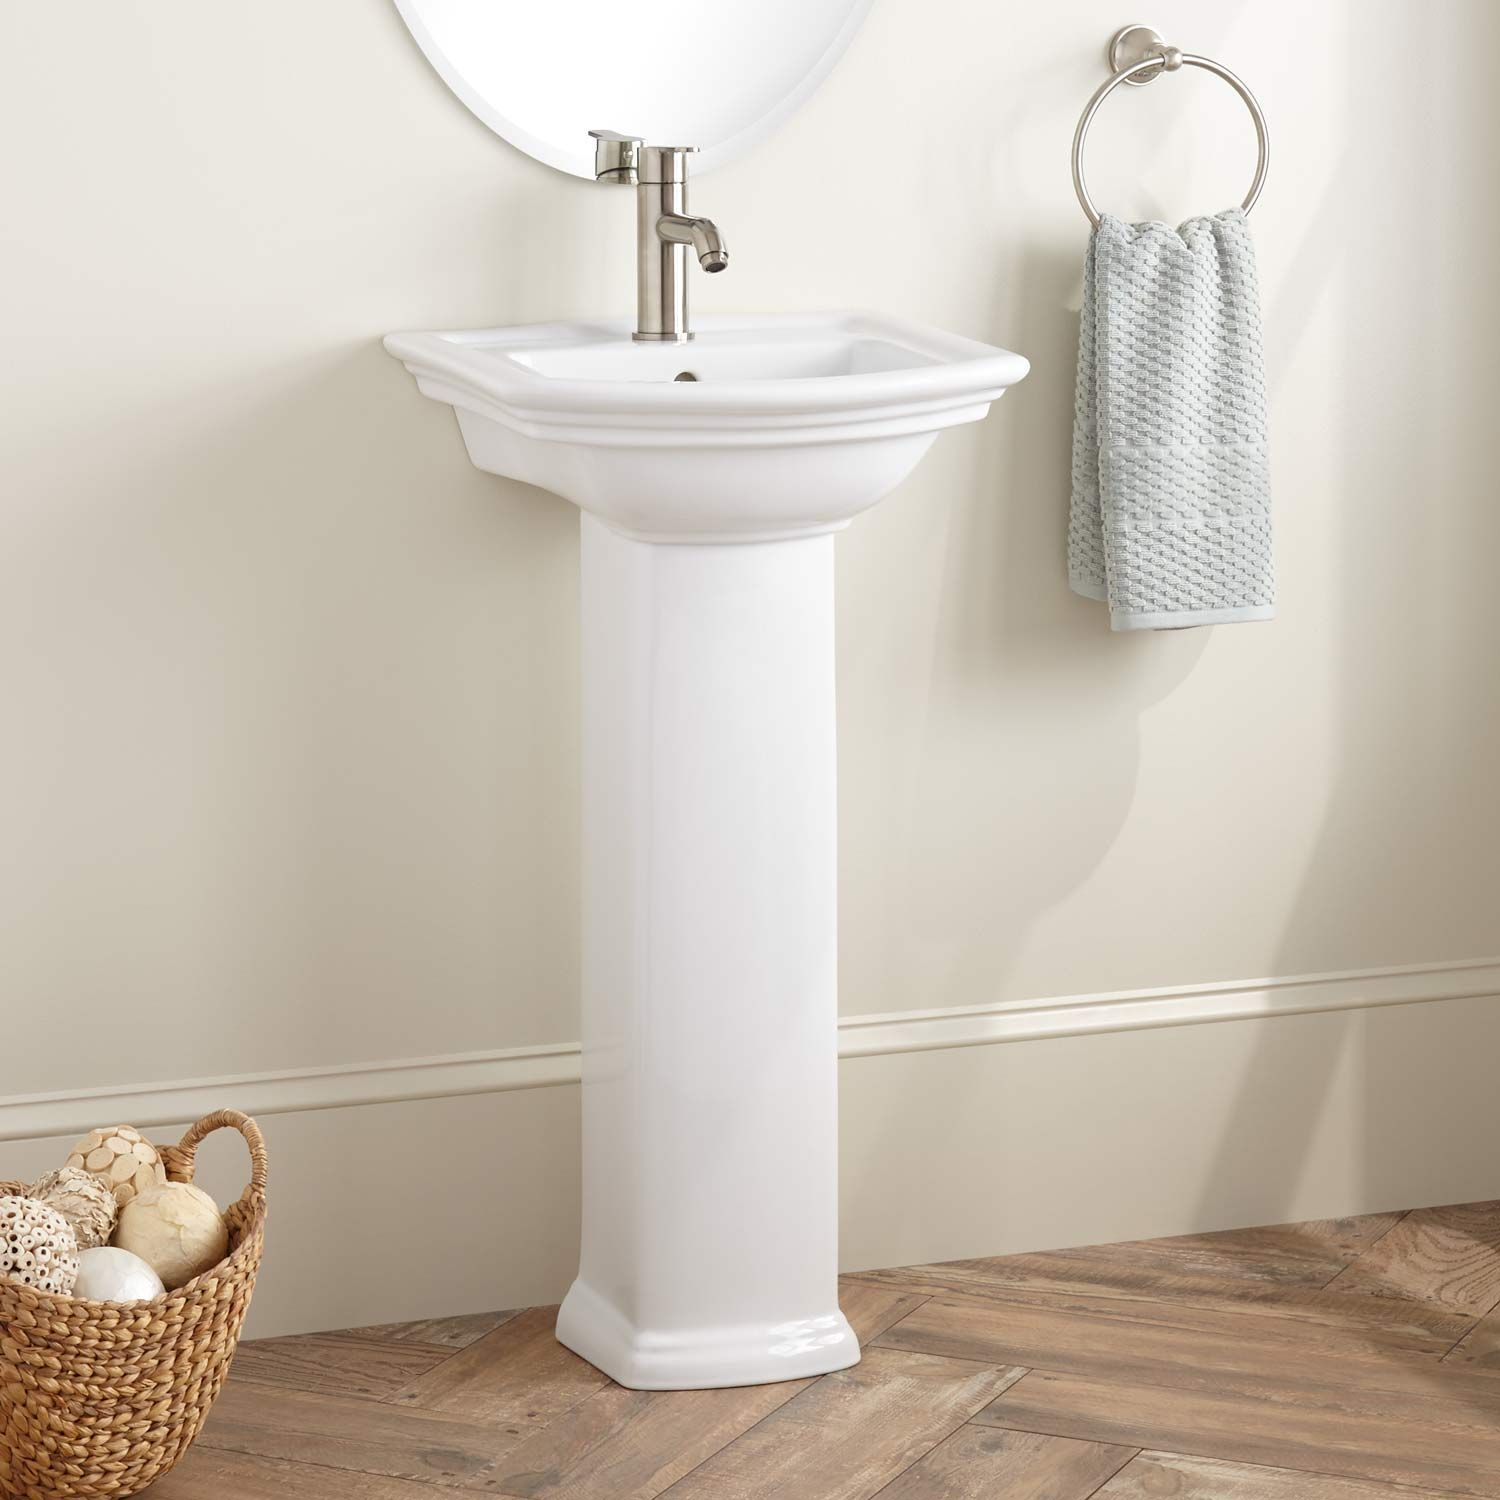 mini pedestal sink. Stanford Porcelain Mini Pedestal Sink - Sinks Bathroom E